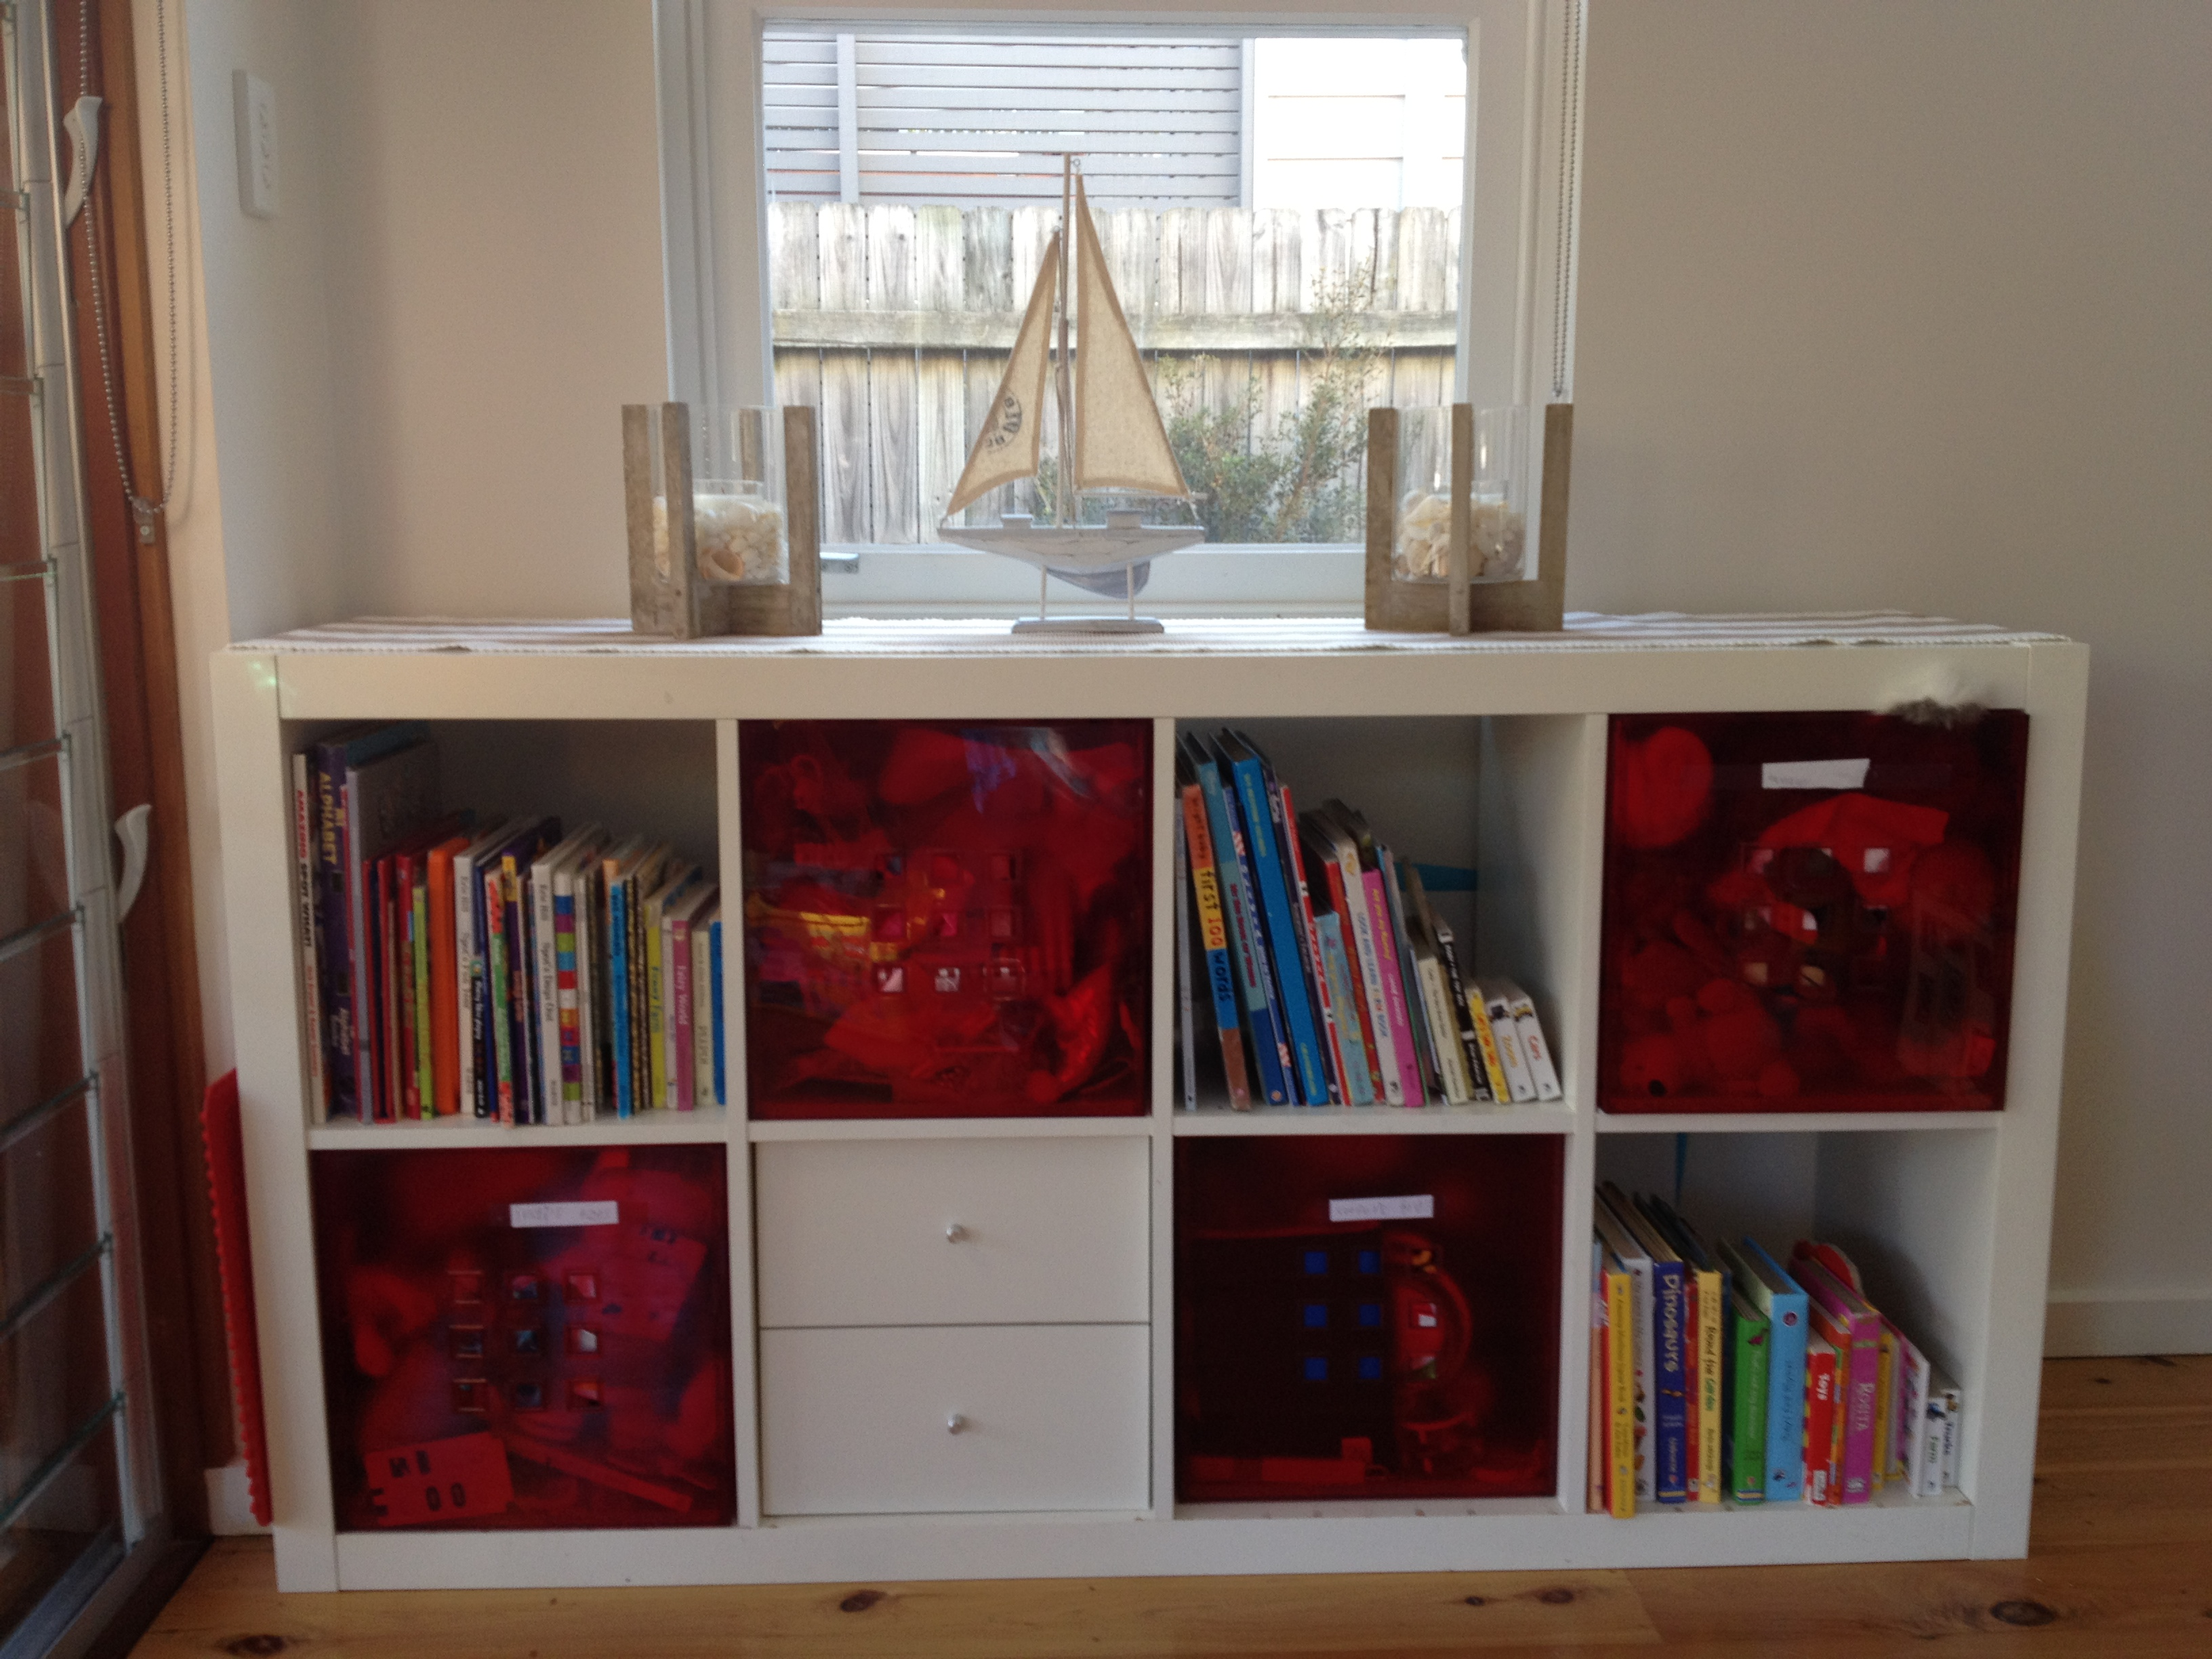 Make A Pretty Kids Room With Smart Ikea Toy Storage Ideas: White Ikea Toy Storage Filled With Books And Other Goods Near Window With Wooden Floor And White Wall